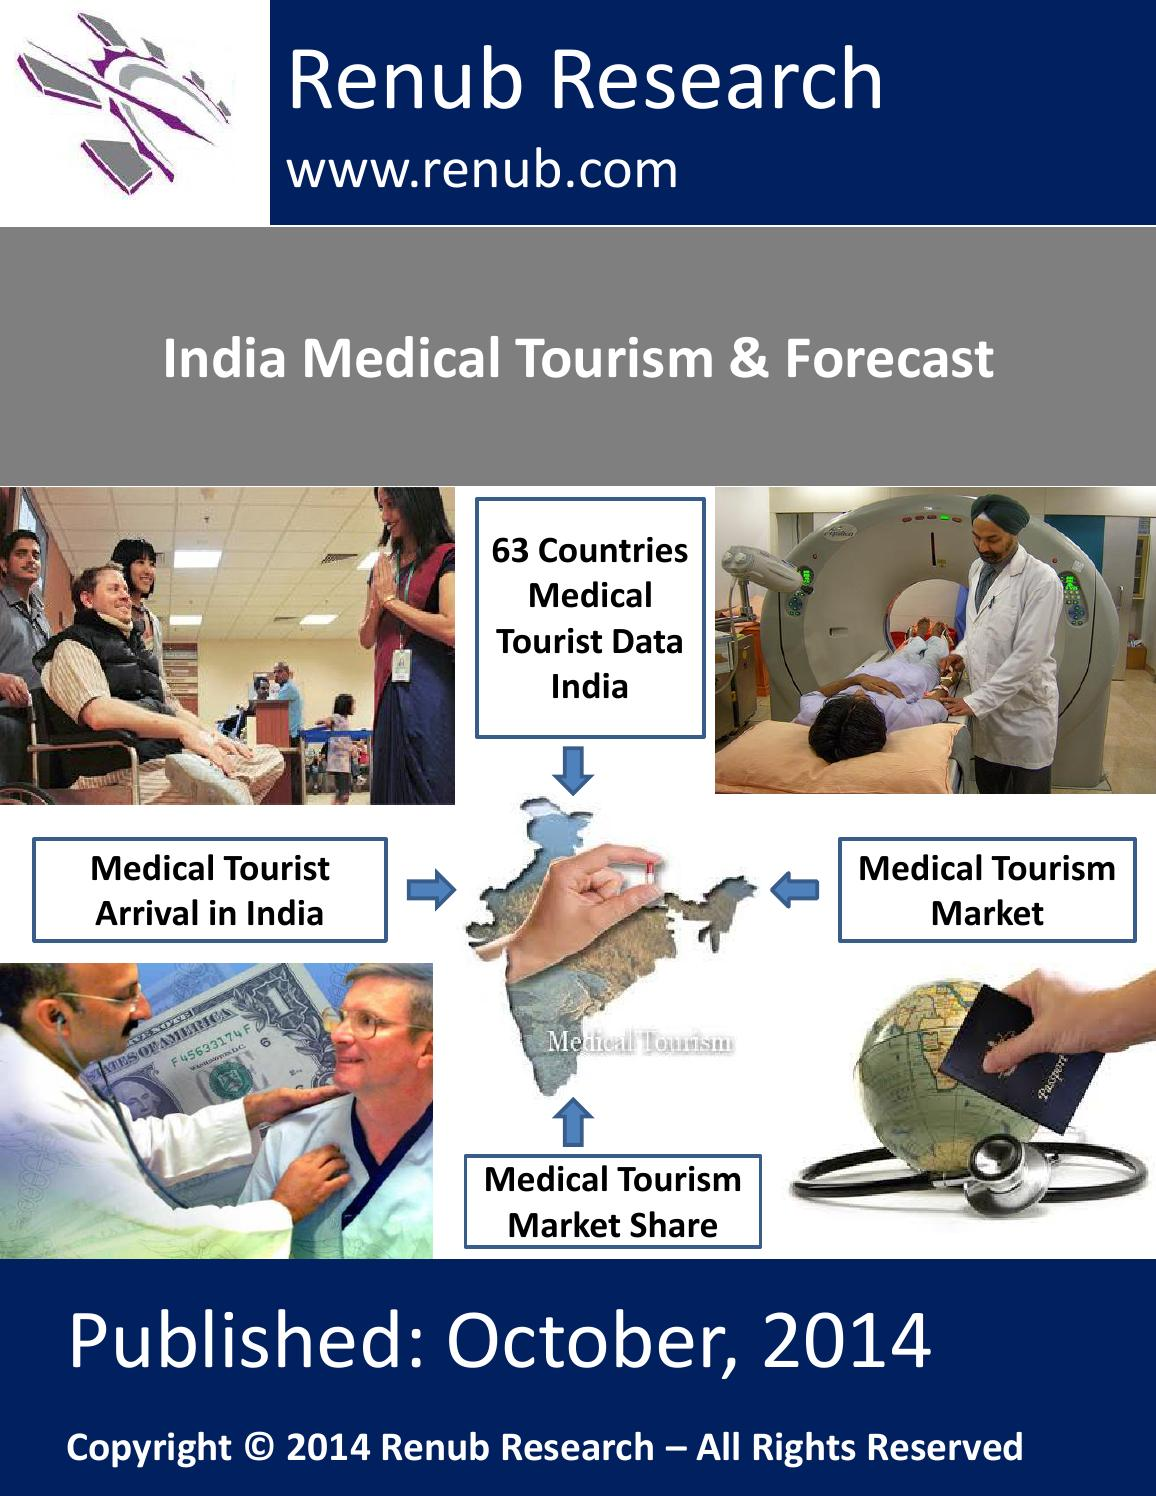 medical tourism in india 2 essay Medical tourism in india:  editorial medical tourism in india: winners and losers  the market is predicted to grow to $2 billion by 2012.